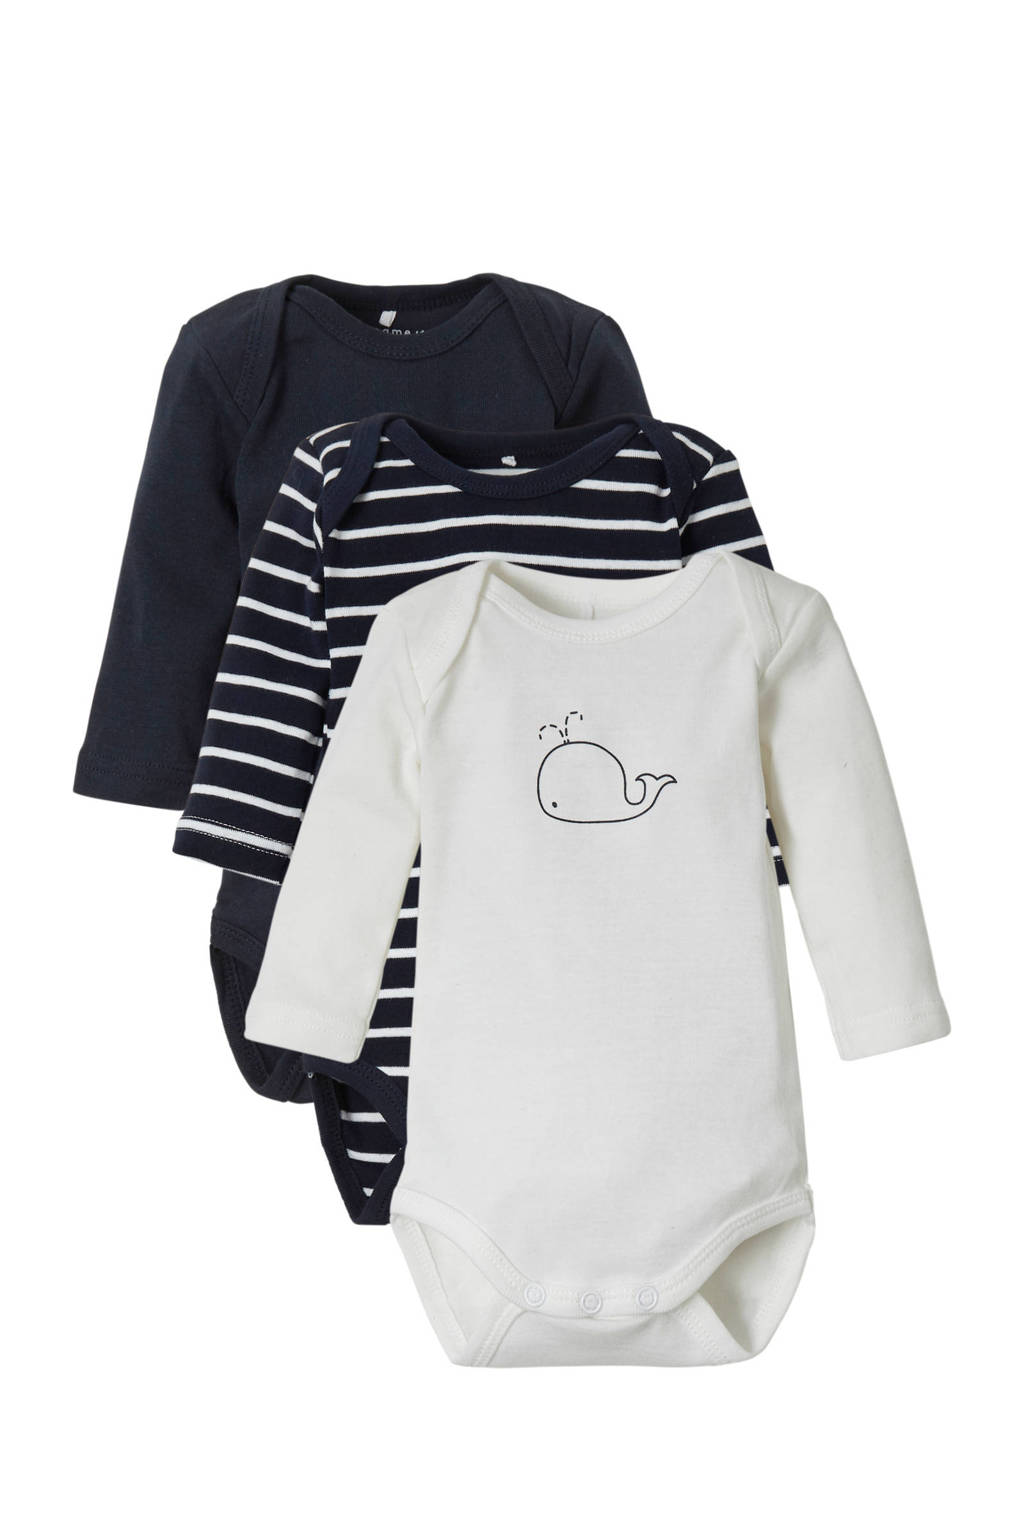 name it BABY baby rompers - set van 3 donkerblauw/wit, Donkerblauw/wit